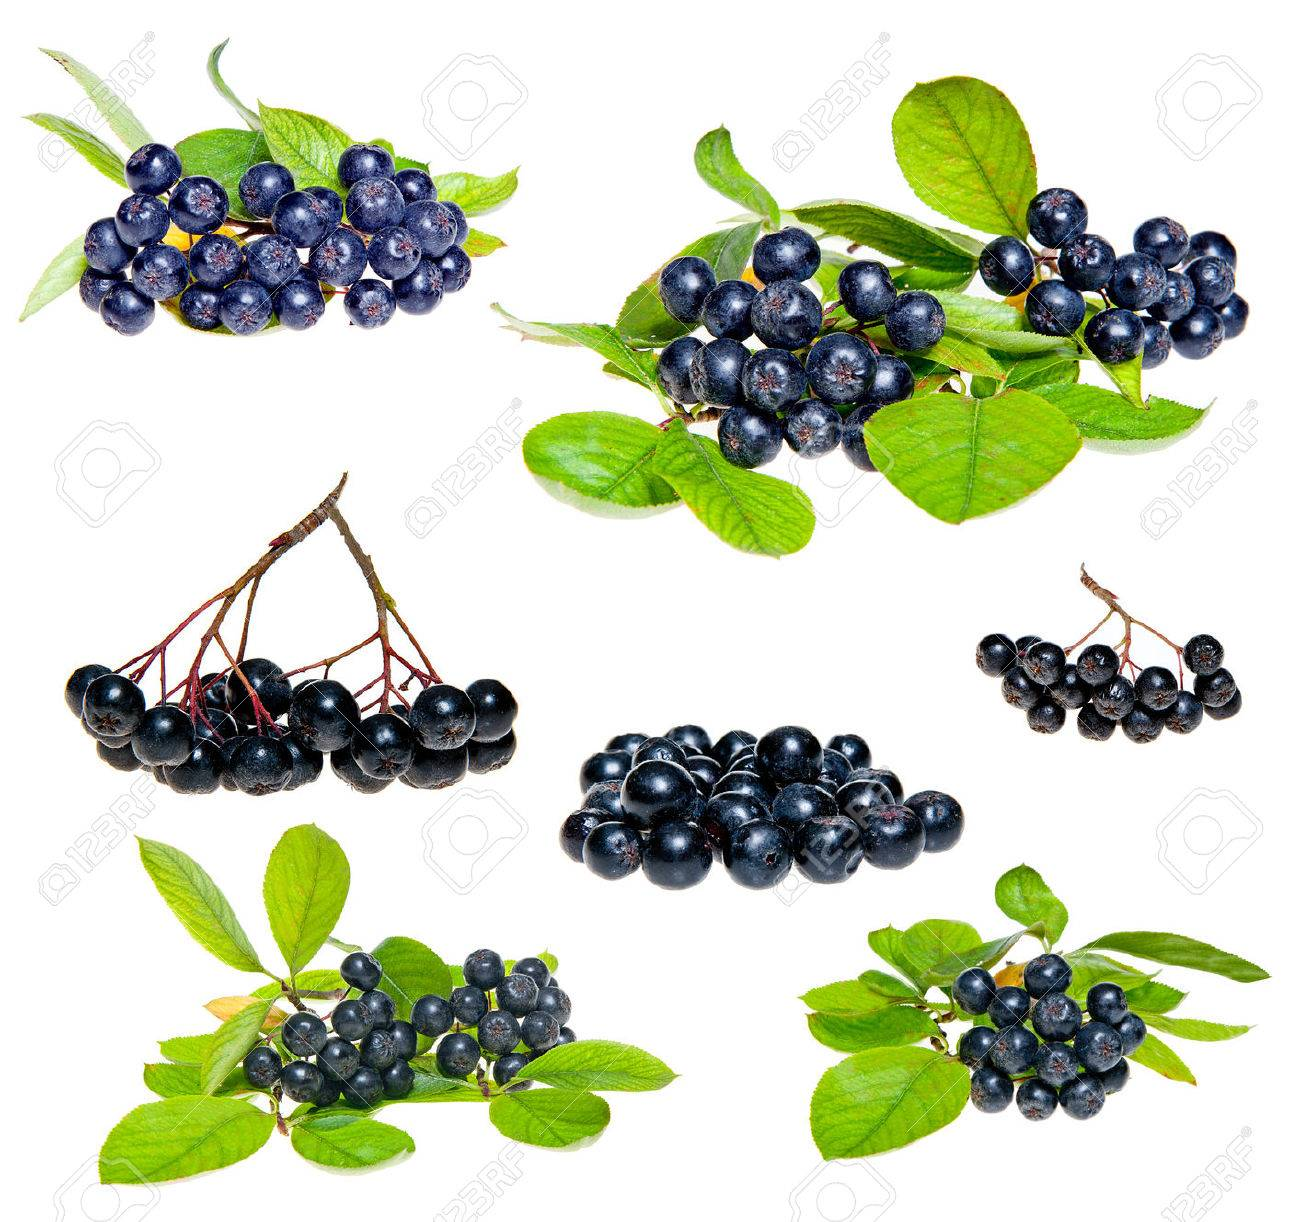 Isolated Aronia - Black Choke berry fruits Separated pile of fruit, twig with leaves, and bunch - 22257400